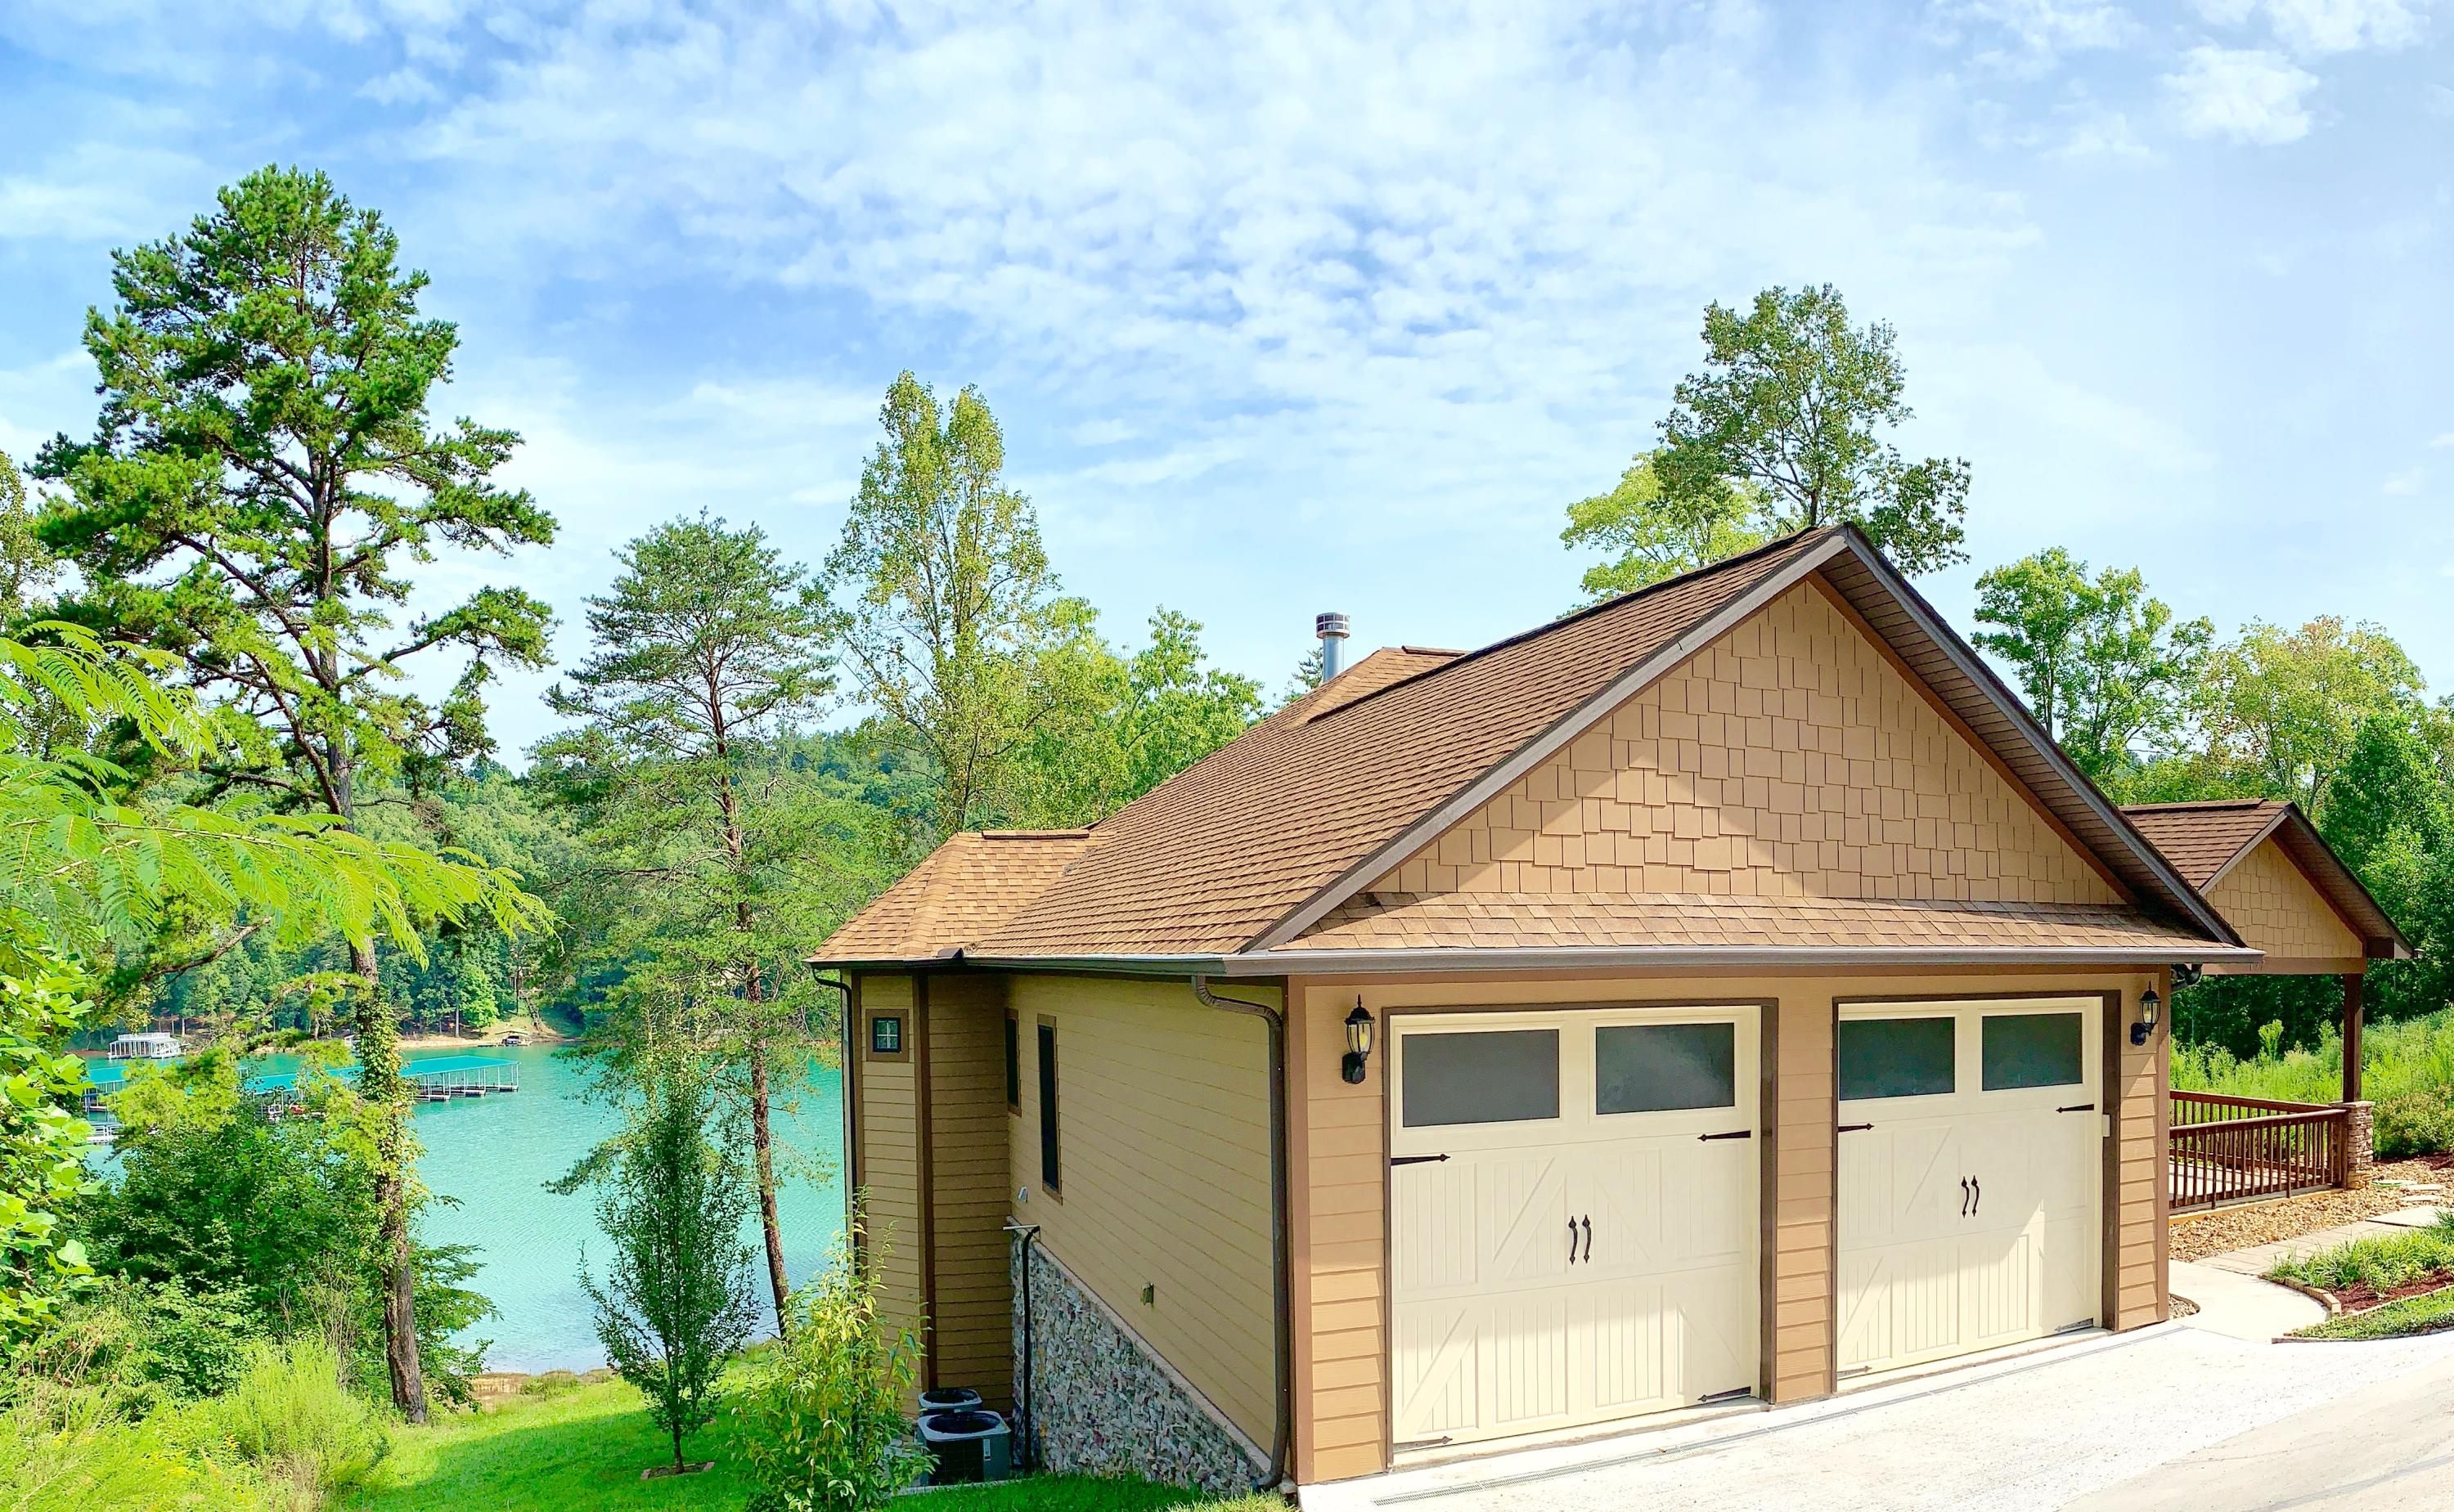 157 Waterside, Lafollette, Tennessee, United States 37766, 3 Bedrooms Bedrooms, ,2 BathroomsBathrooms,Single Family,For Sale,Waterside,1083851